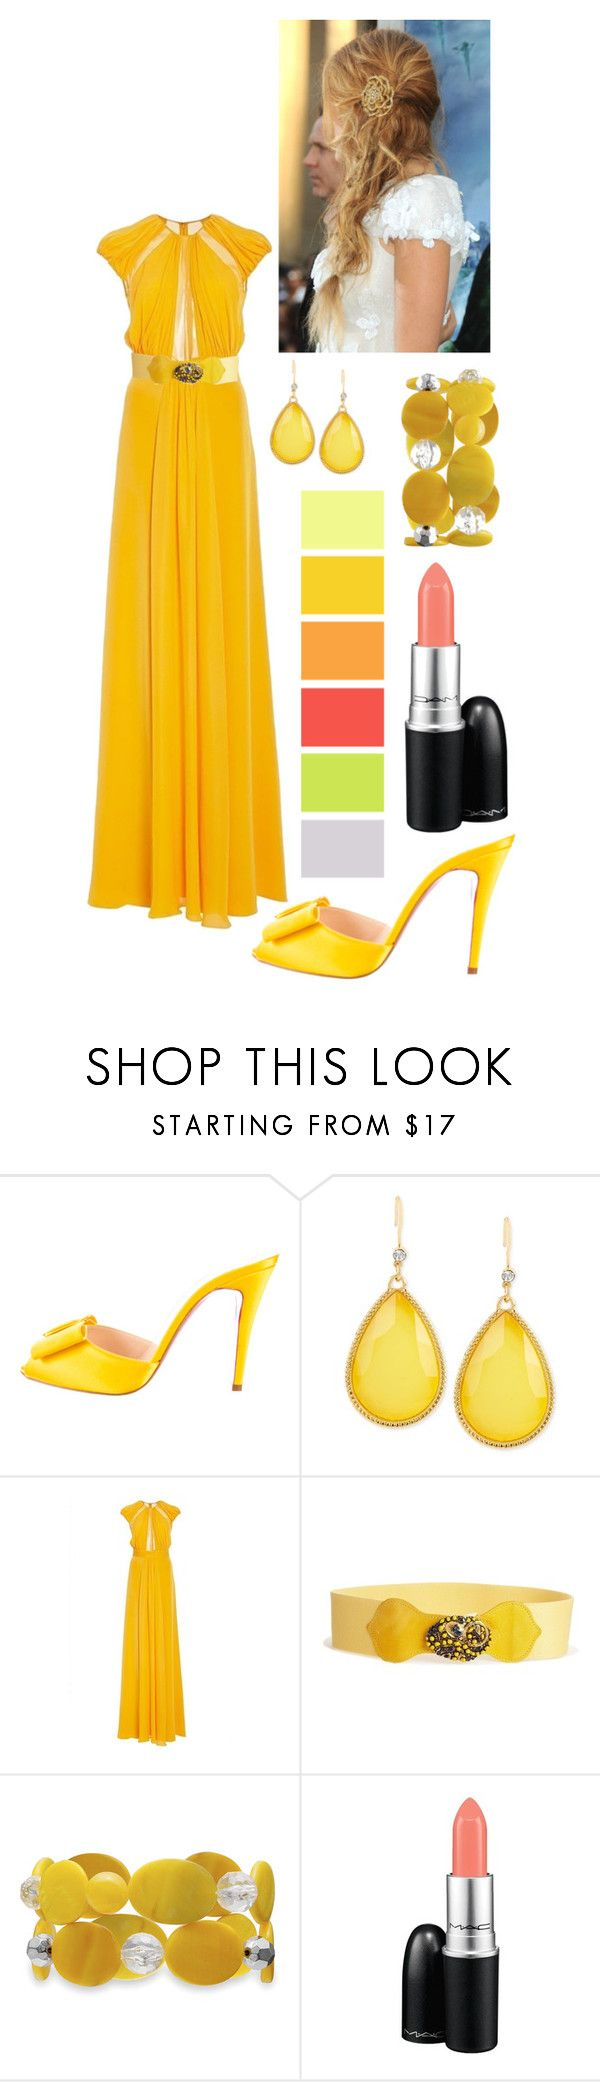 """""""Marigold Gown & Yellow Belt"""" by comorbid19 ❤ liked on Polyvore featuring Christian Louboutin, INC International Concepts, Cushnie Et Ochs, Black & Brown London, Mixit, MAC Cosmetics, women's clothing, women's fashion, women and female"""